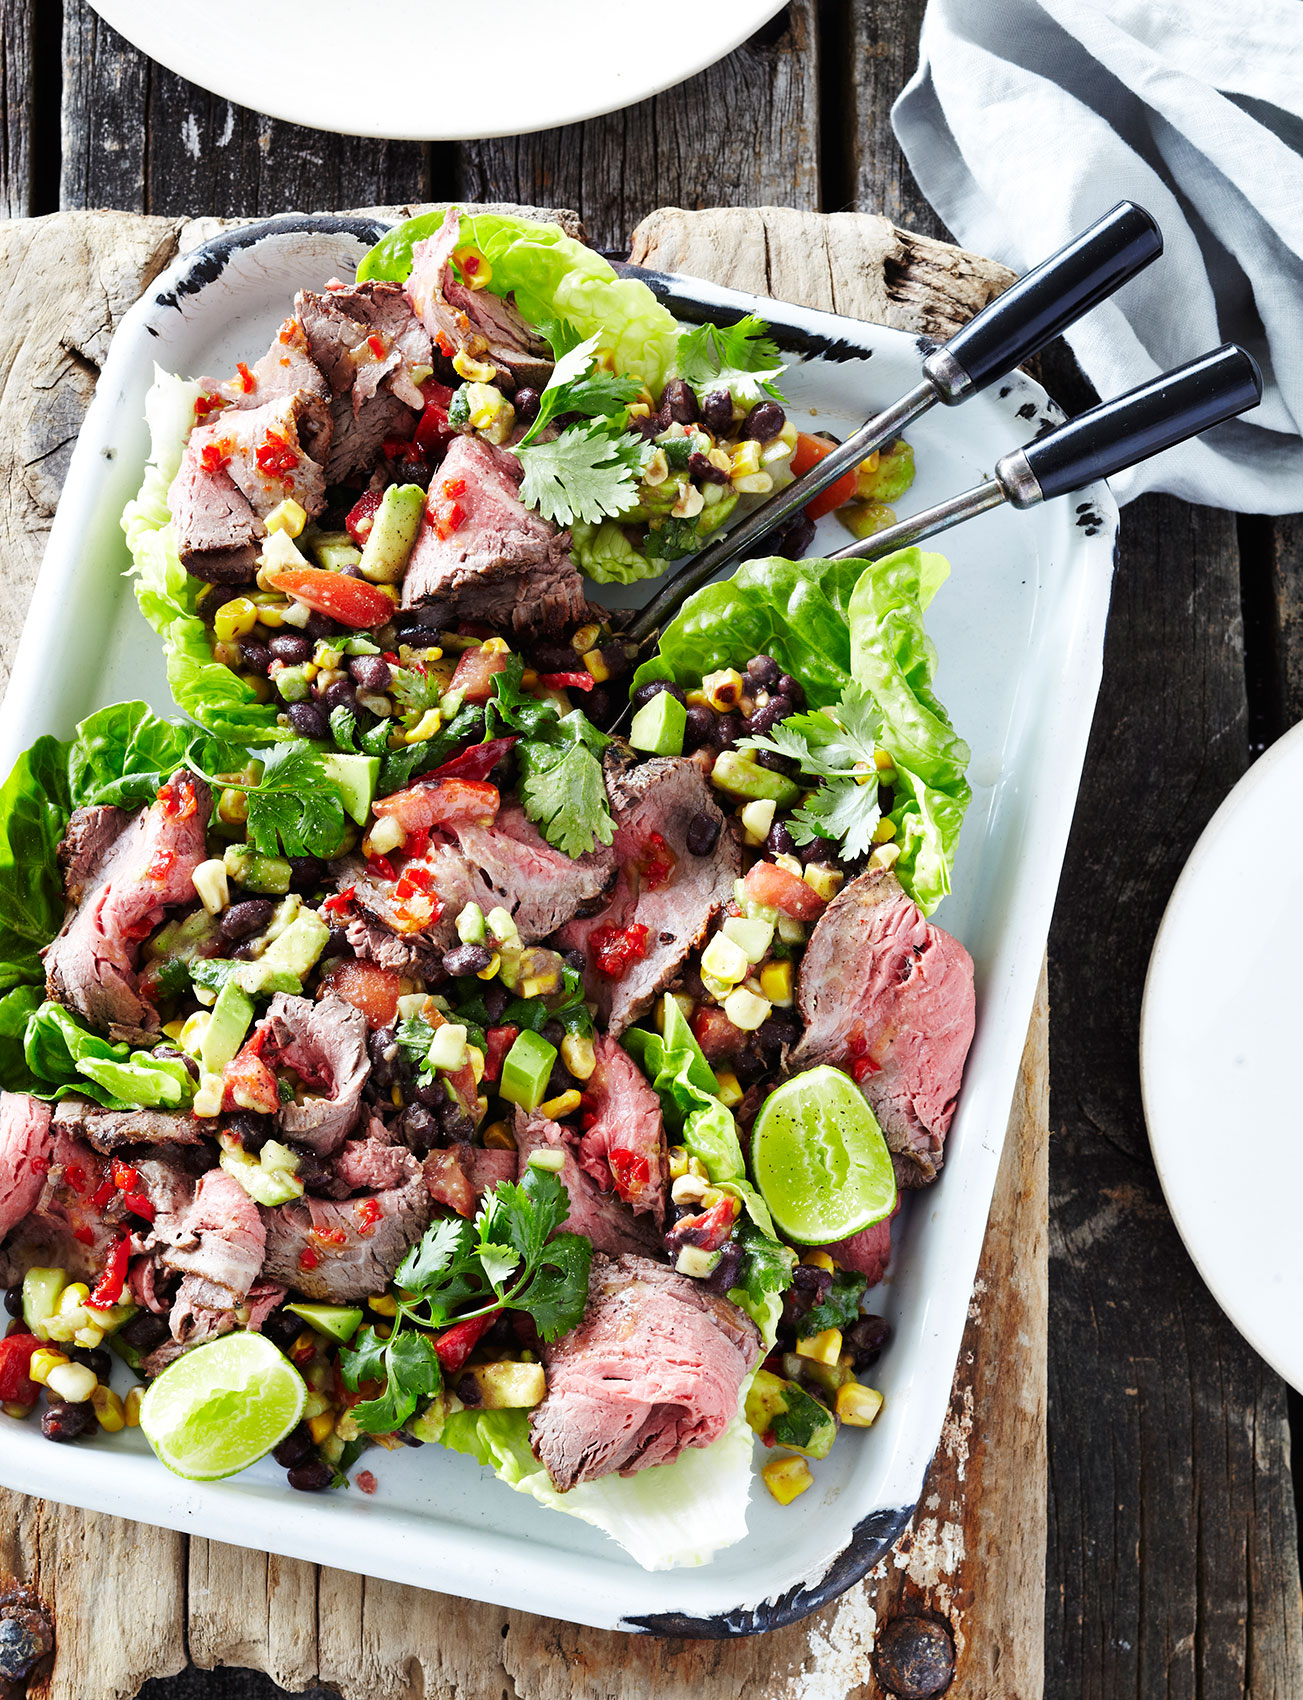 Penguin_Salads_Meats_MexicanBeef